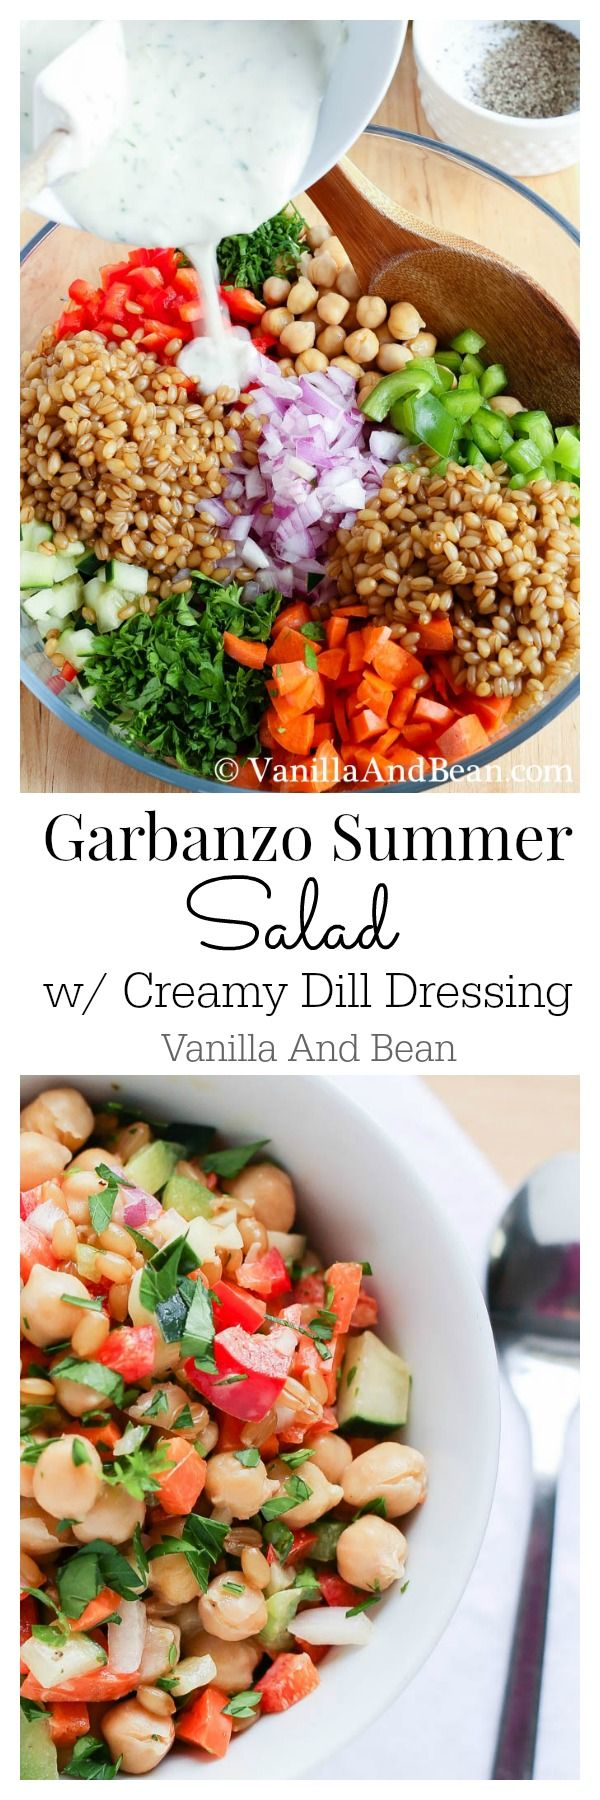 Garbanzo (Chickpea) Summer Salad with Creamy Dill Dressing #Vegan | Vanilla And Bean